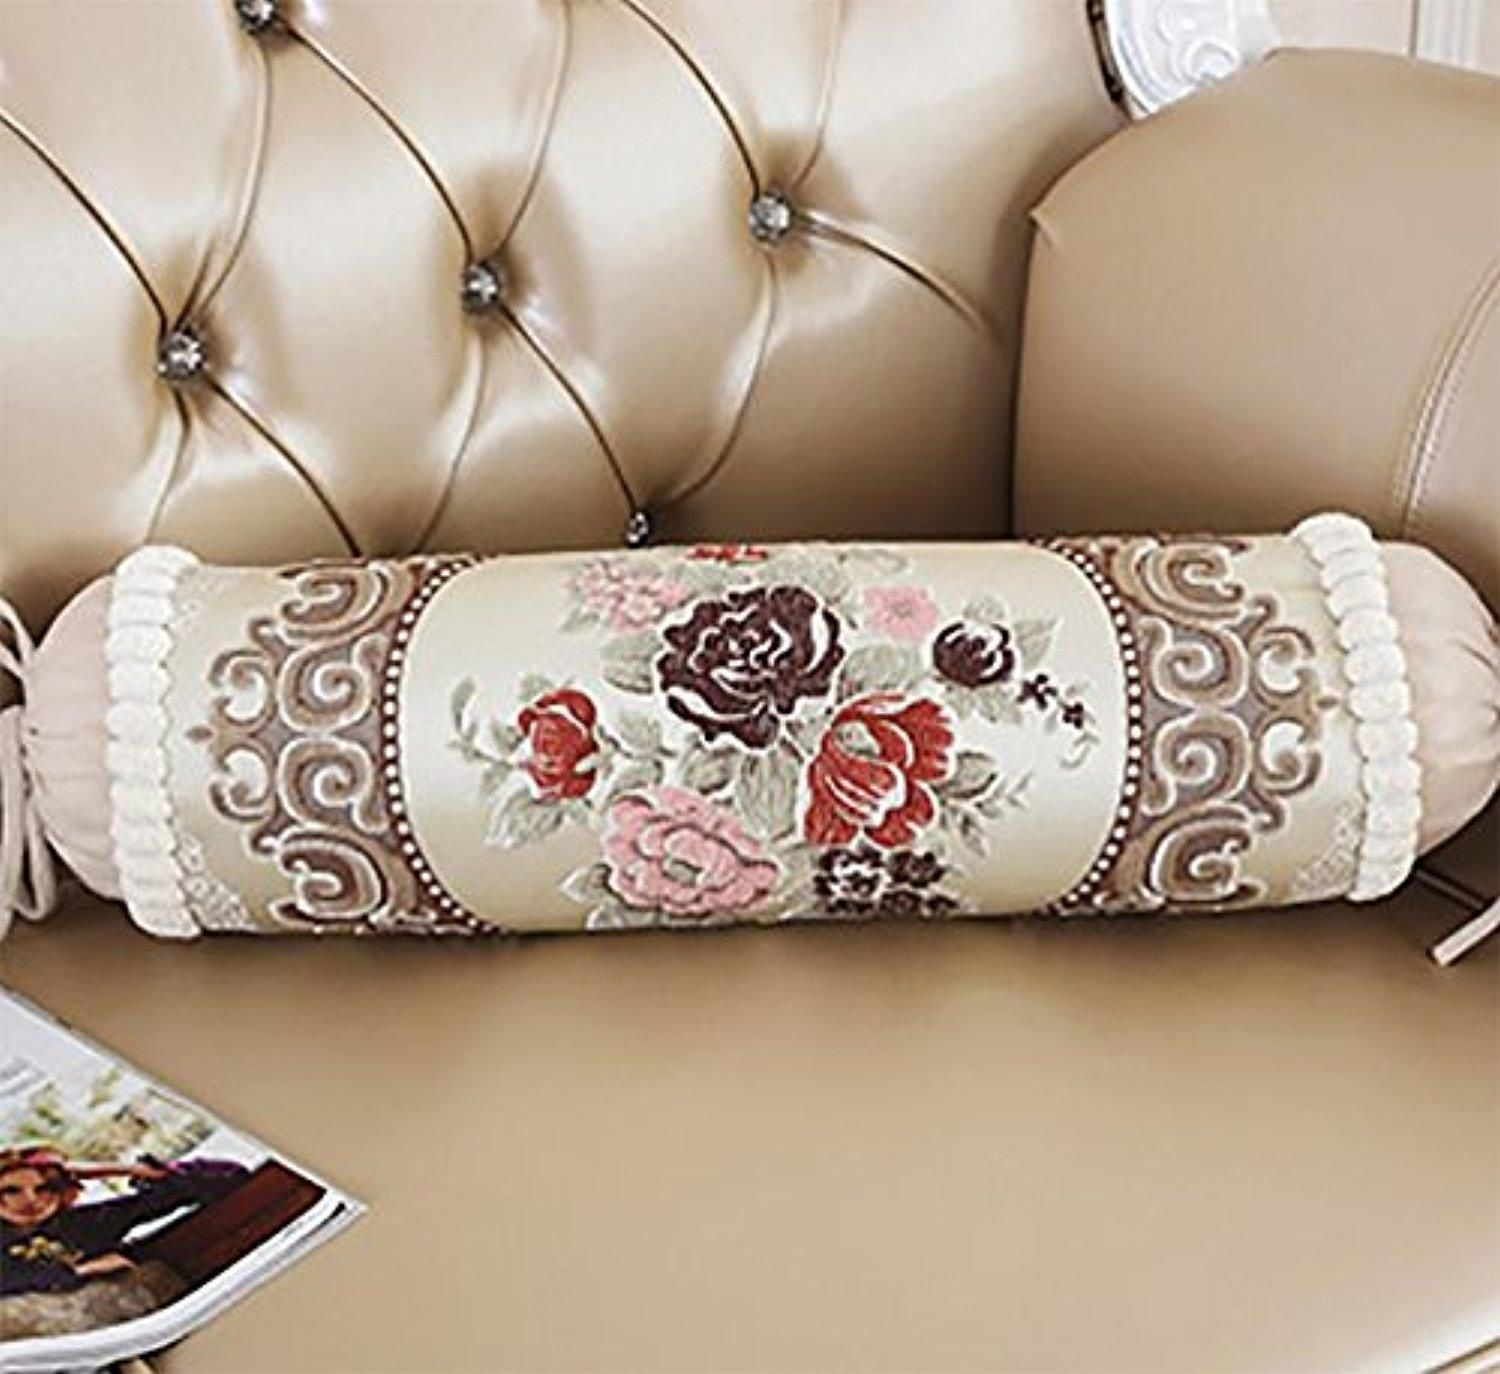 stylish pet covers for sofas architecture-Cool Pet Covers for sofas Layout